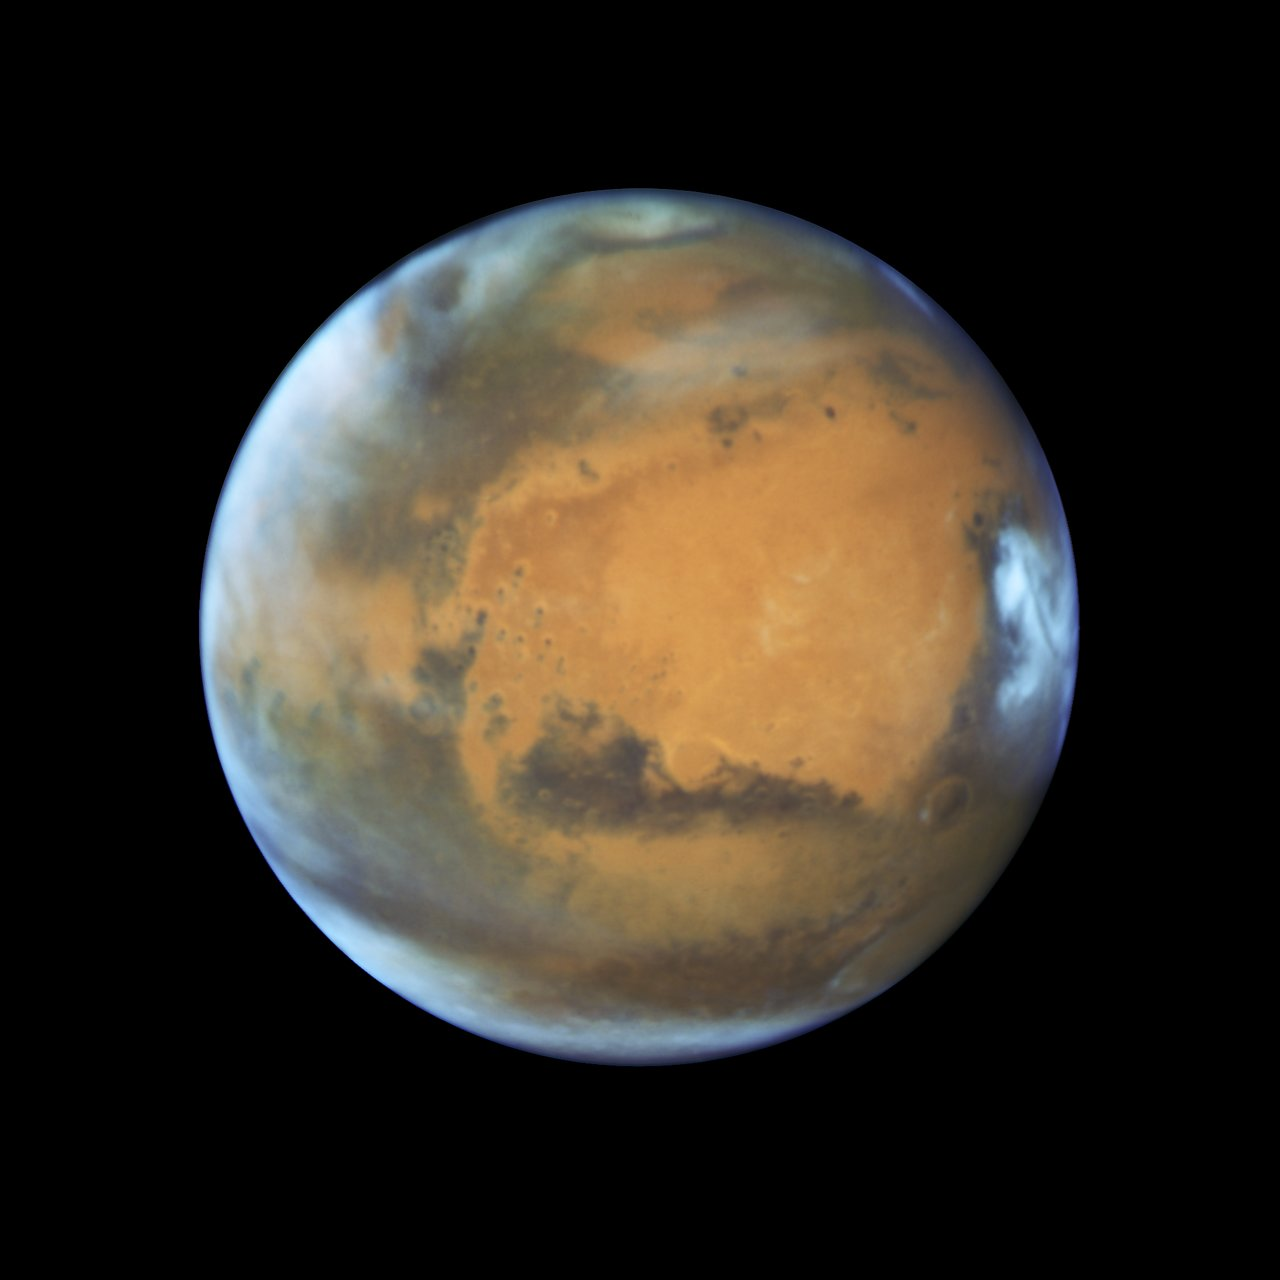 This image shows our neighbouring planet Mars, as it was observed shortly before opposition in 2016 by the NASA/ESA Hubble Space Telescope.  Some prominent features of the planet are clearly visible: the ancient and inactive shield volcano Syrtis Major; the bright and oval Hellas Planitia basin; the heavily eroded Arabia Terra in the centre of the image; the dark features of Sinus Sabaeous and Sinus Meridiani along the equator; and the small southern polar cap. Image   Credit:NASA, ESA, the Hubble Heritage Team (STScI/AURA), J. Bell (ASU), and M. Wolff (Space Science Institute)